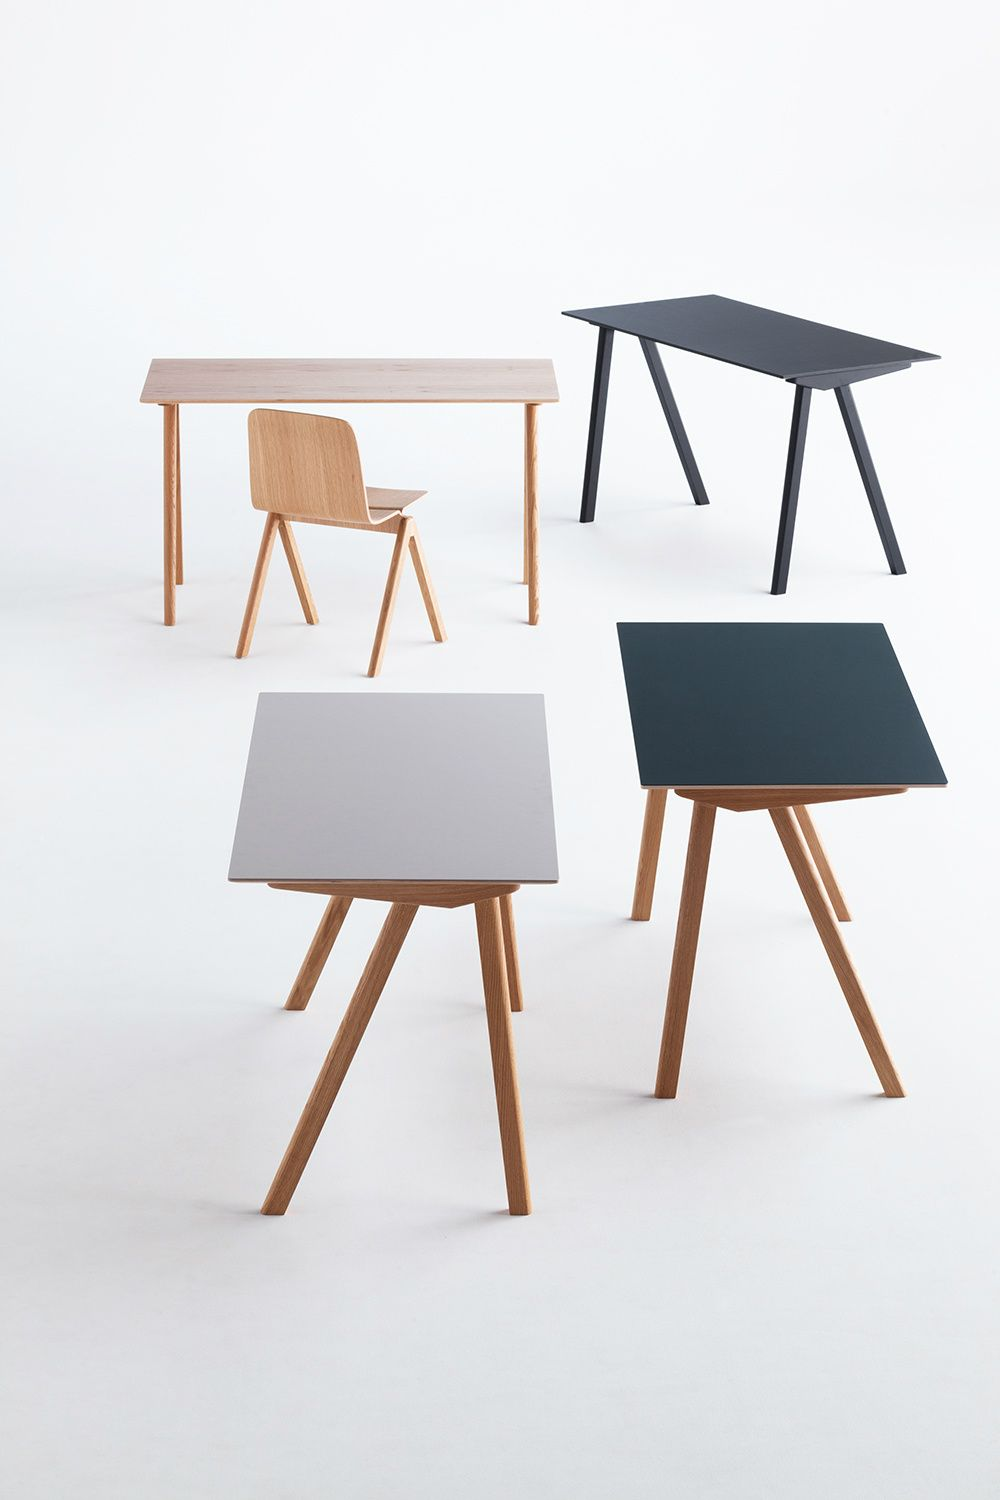 Discover All The Information About The Product Wooden Desk / Scandinavian  Design / By Ronan U0026 Erwan Bouroullec COPENHAGUE :   Hay A/s And Find Where  You Can ...